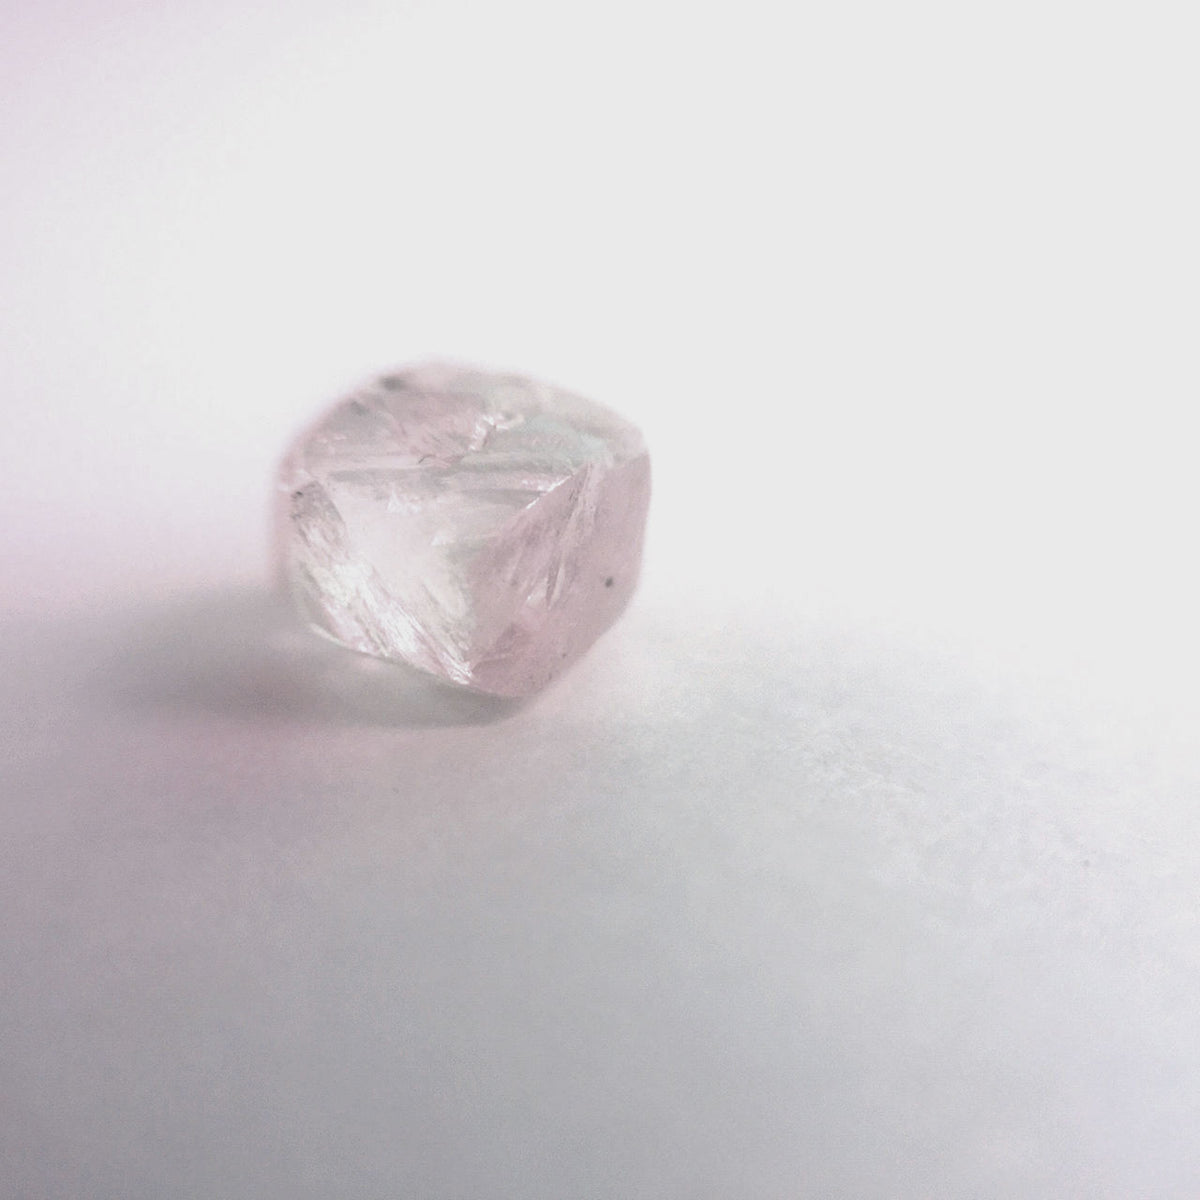 SOLD -  2.02 - ct Rough Diamond Color: E Clarity: vs